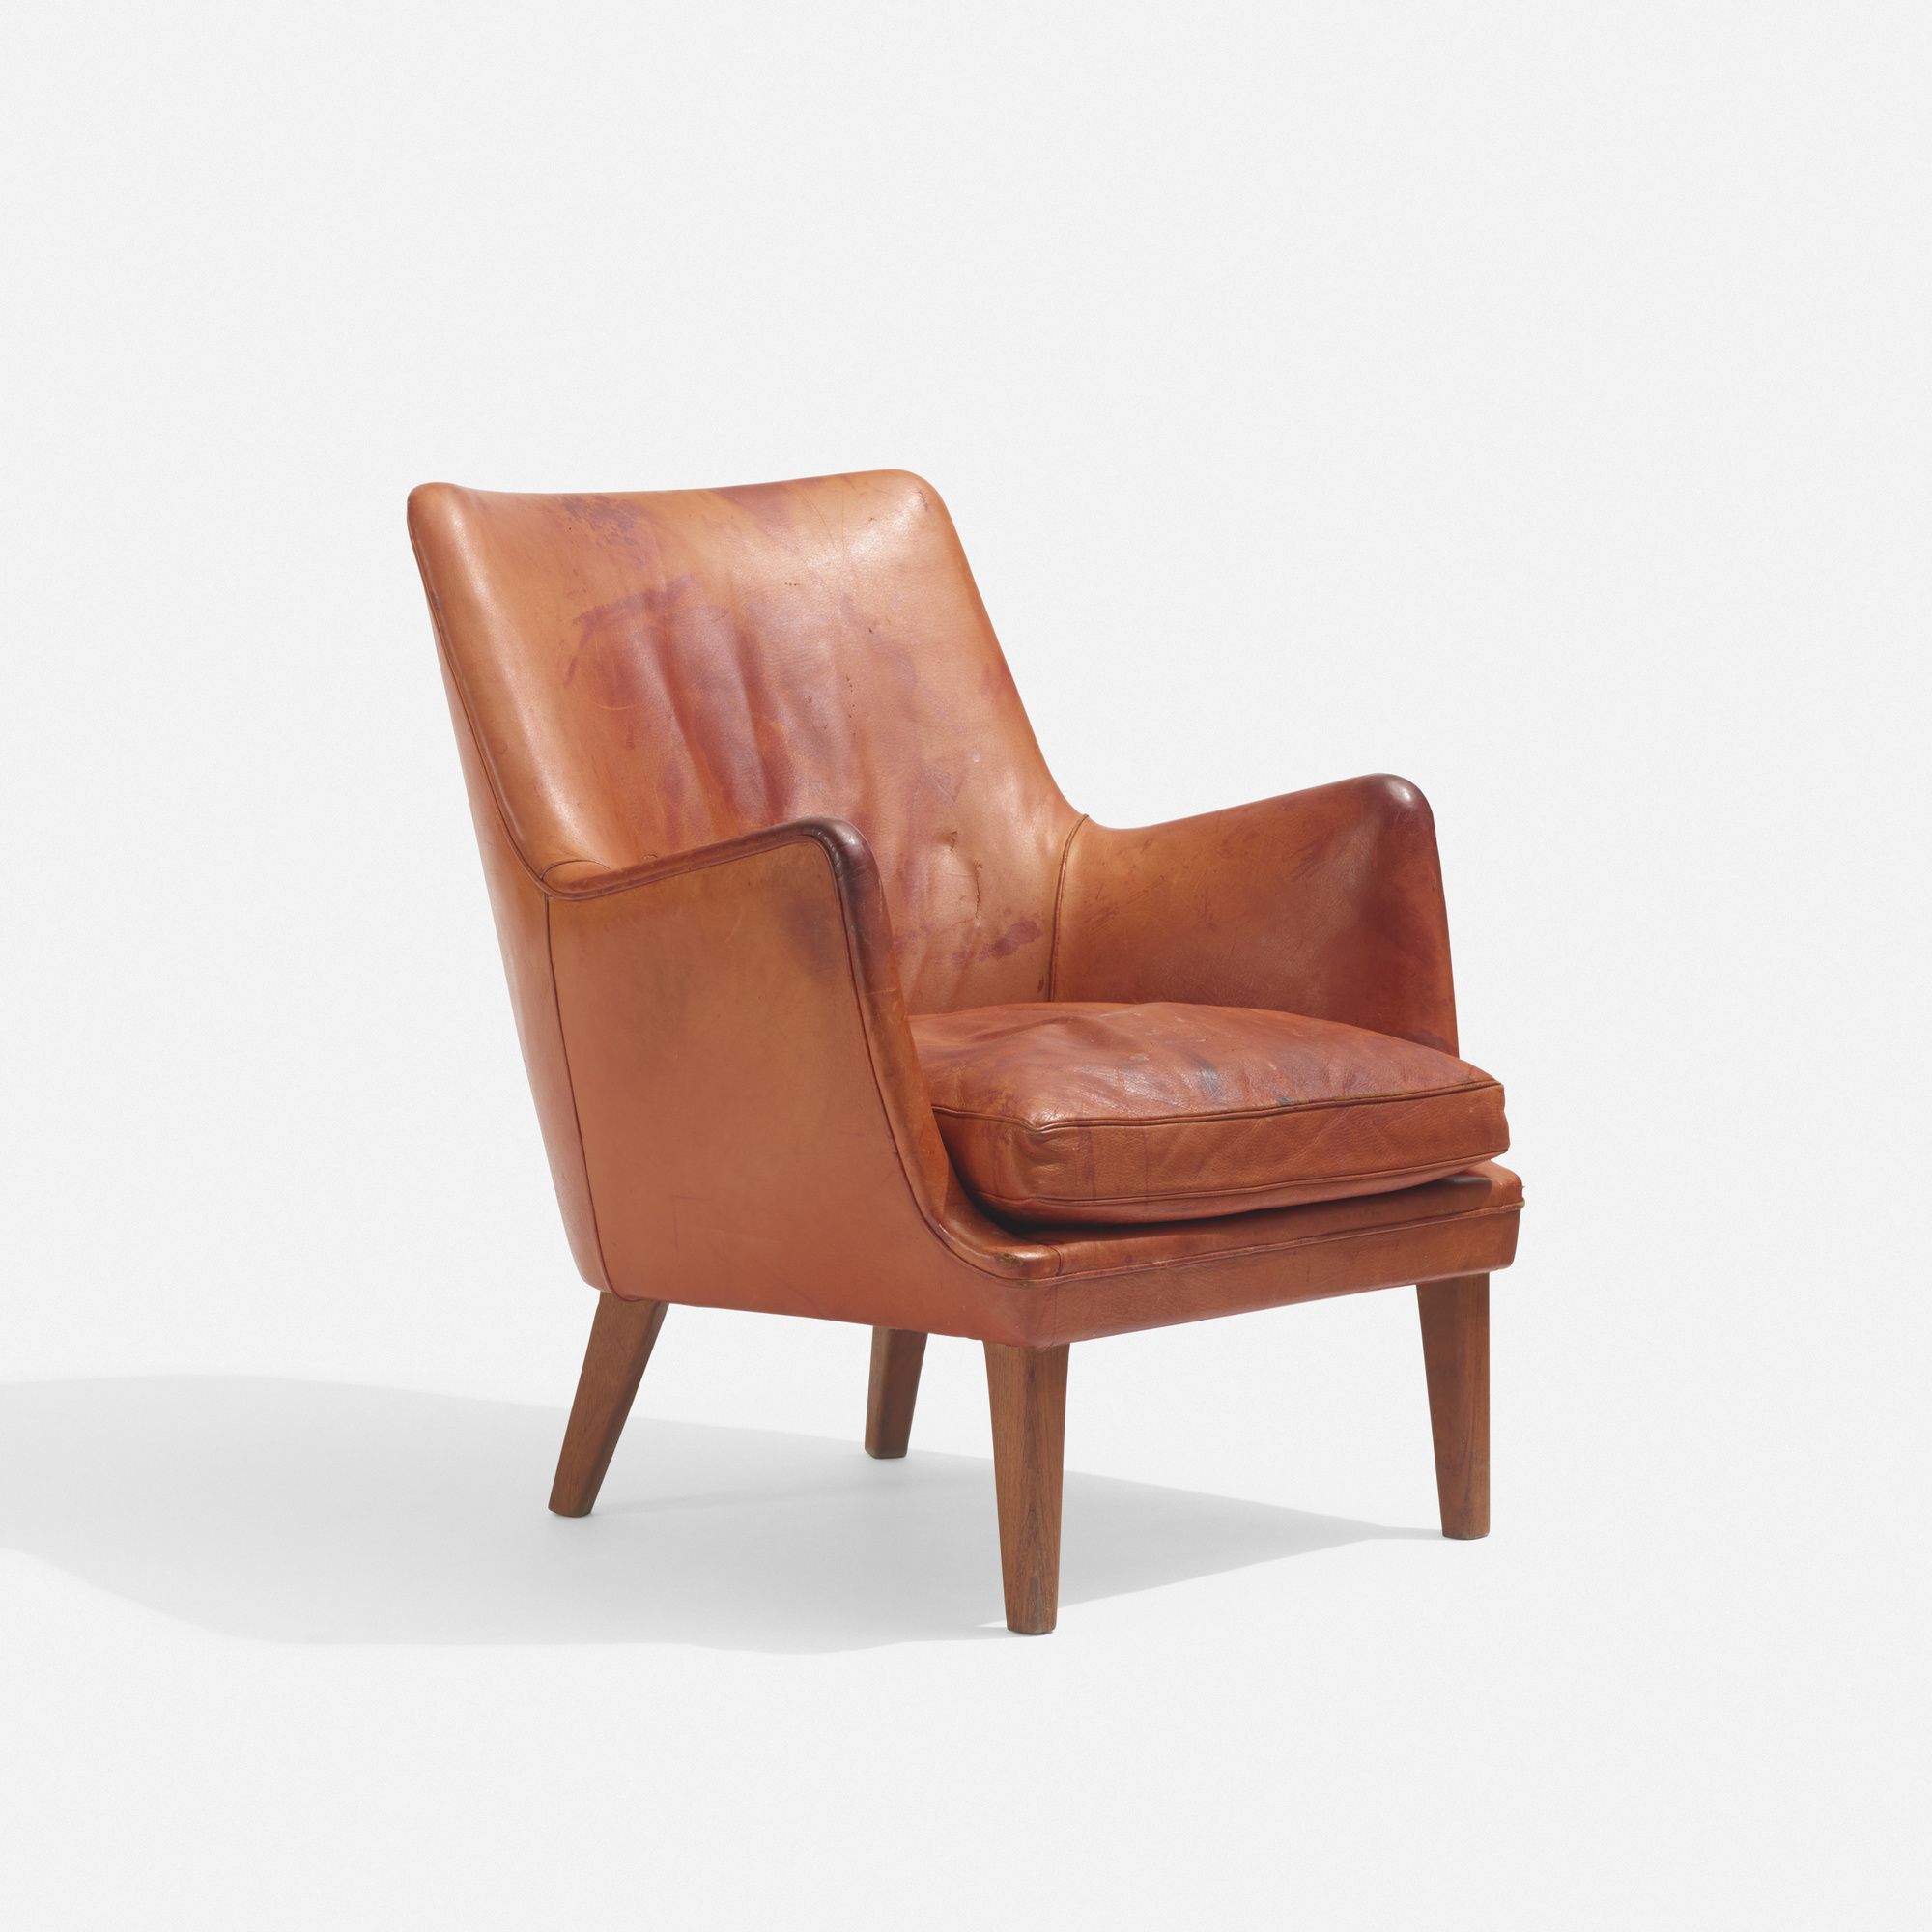 276: Arne Vodder / lounge chair (1 of 4)